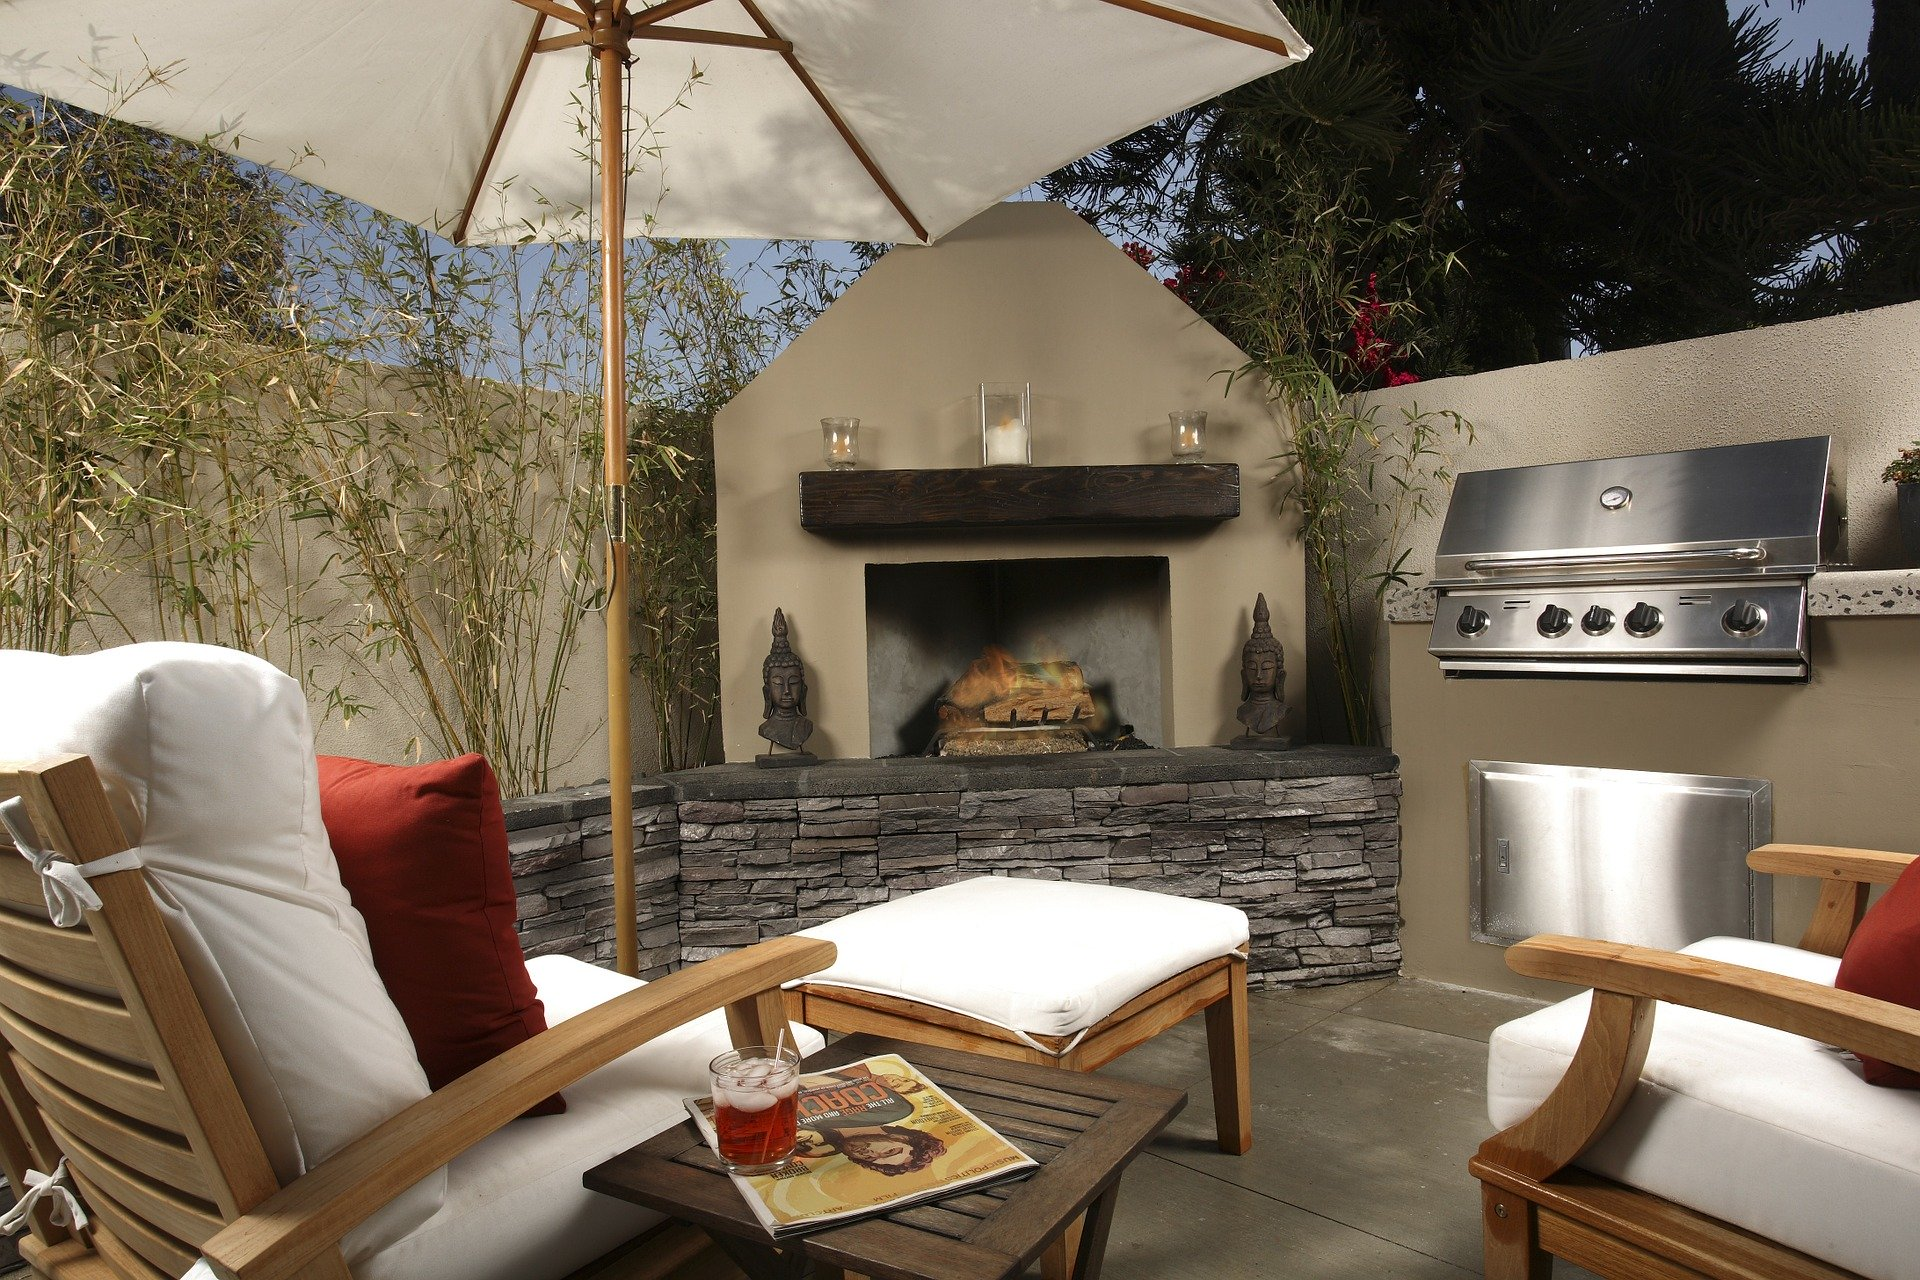 Top 4 Exterior Home Improvements That Bring the Biggest ROI